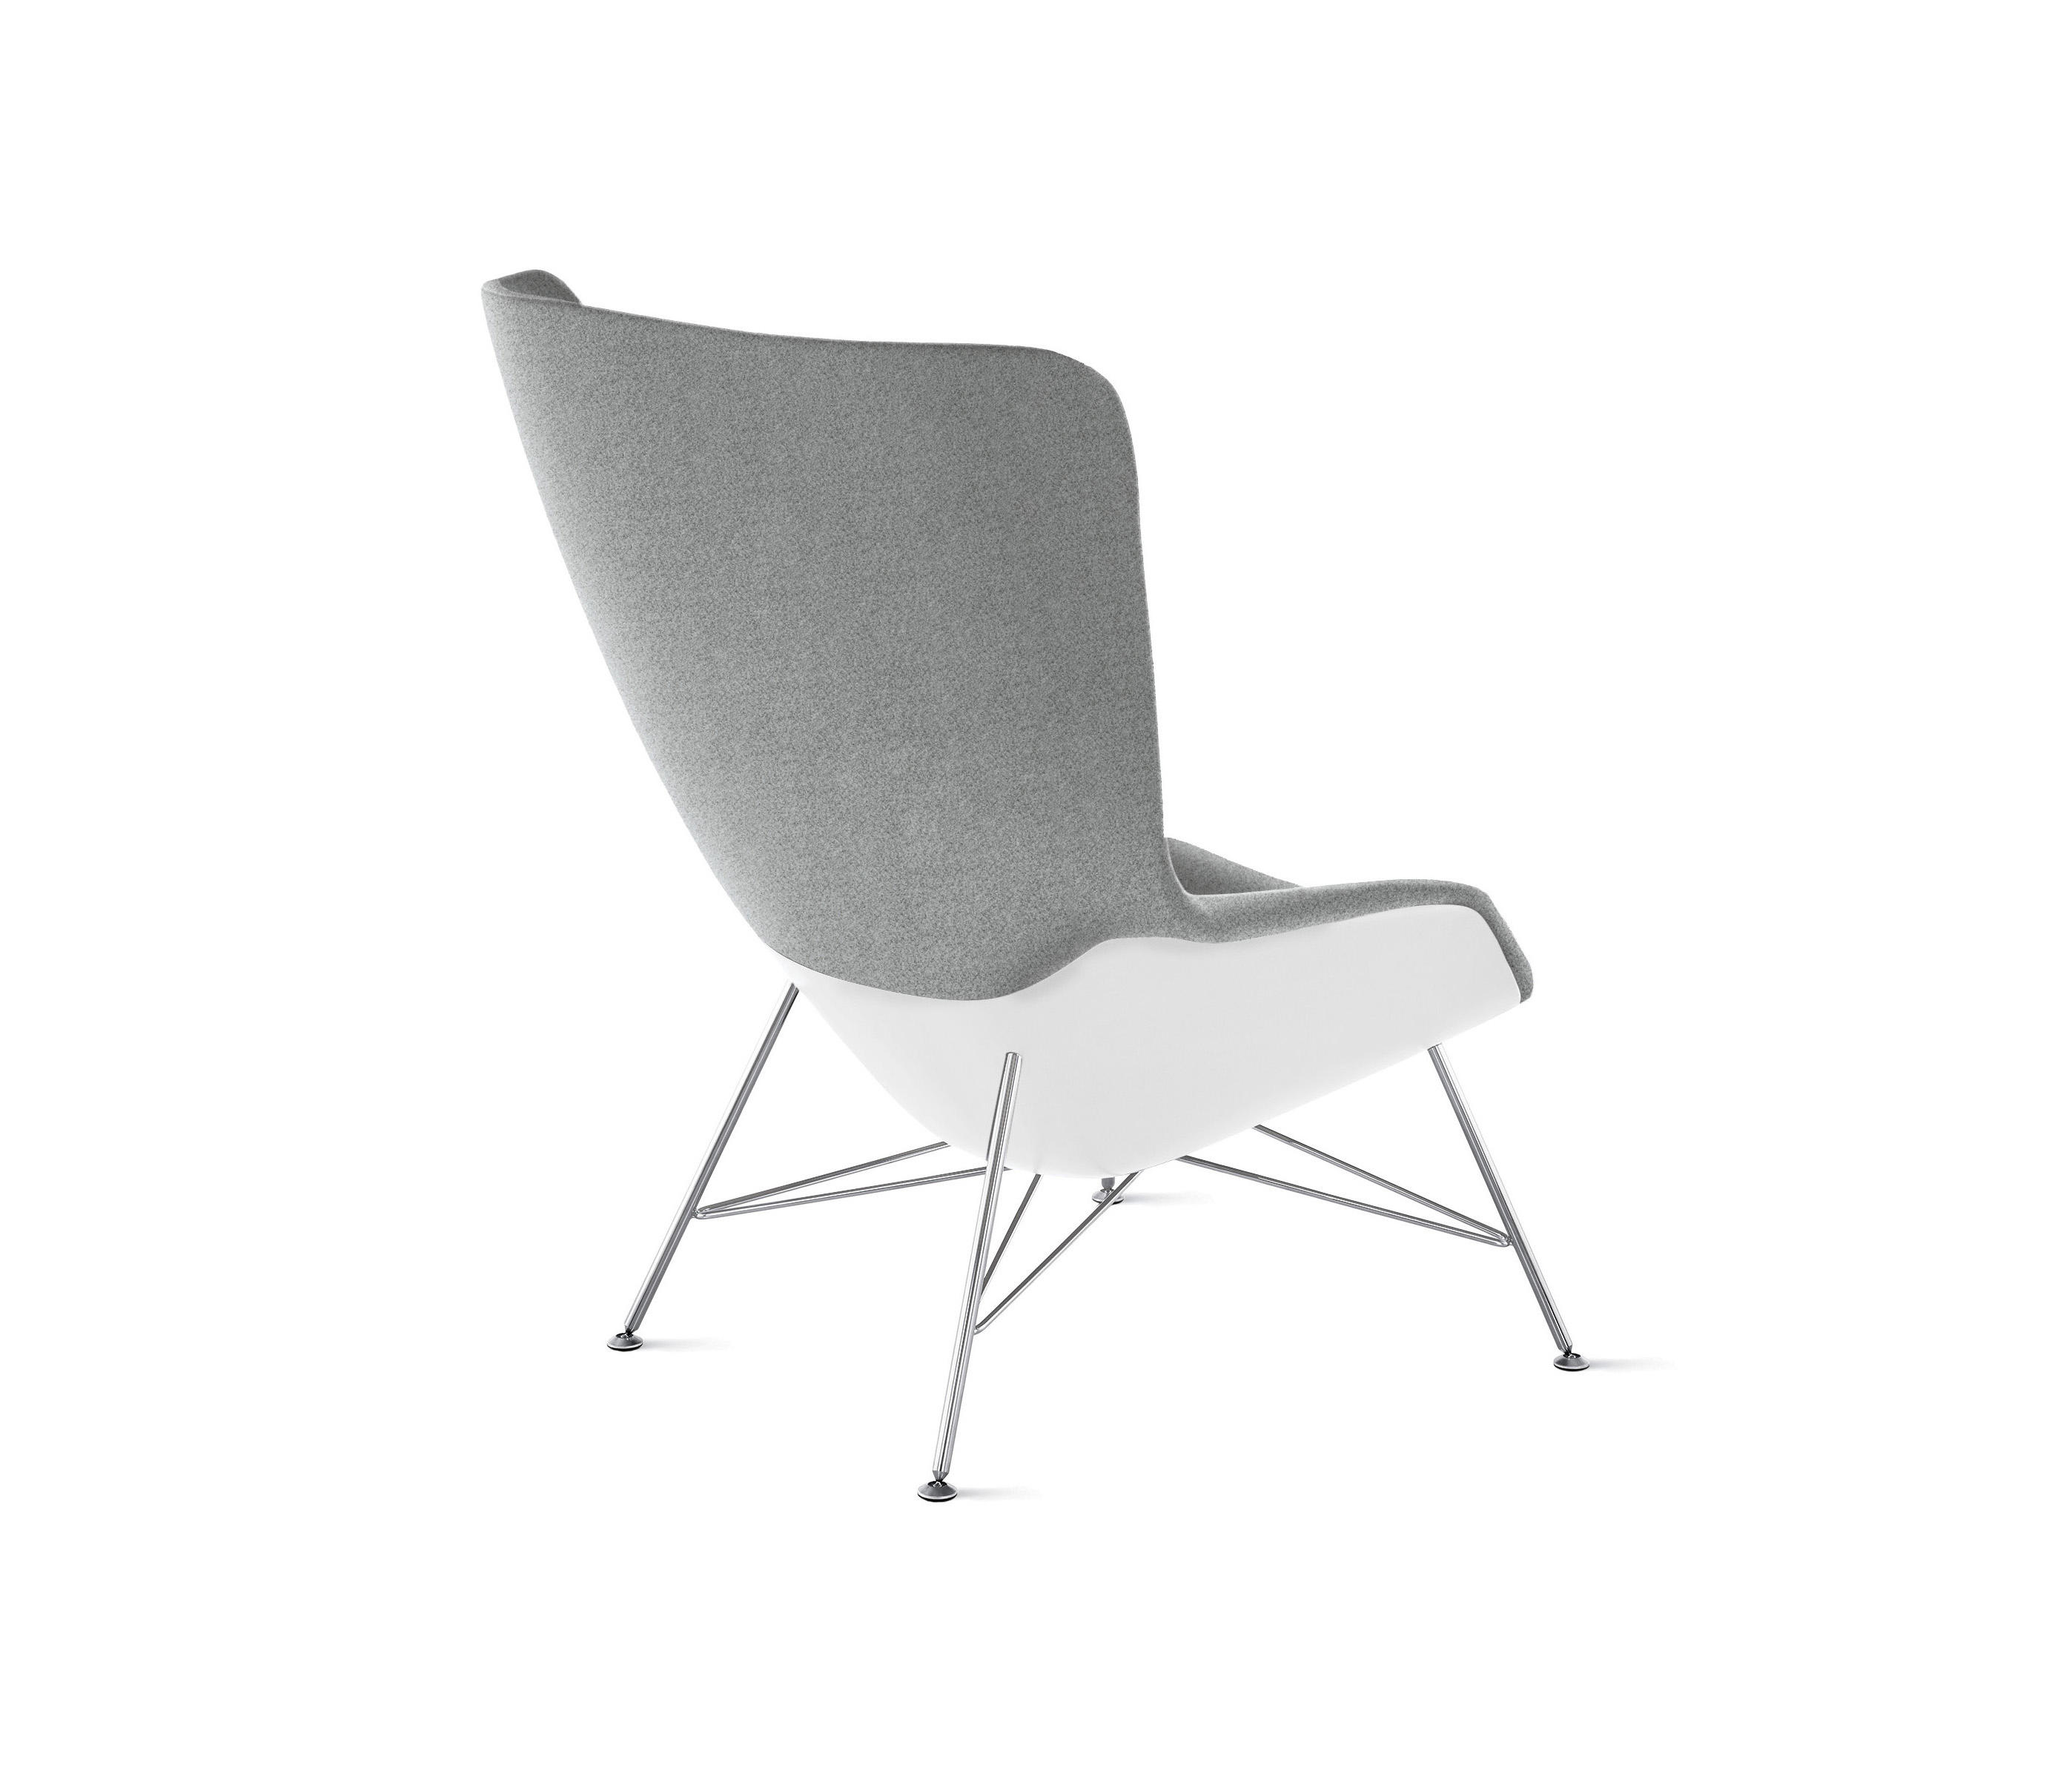 chair design within reach www folding chairs striad high back lounge from